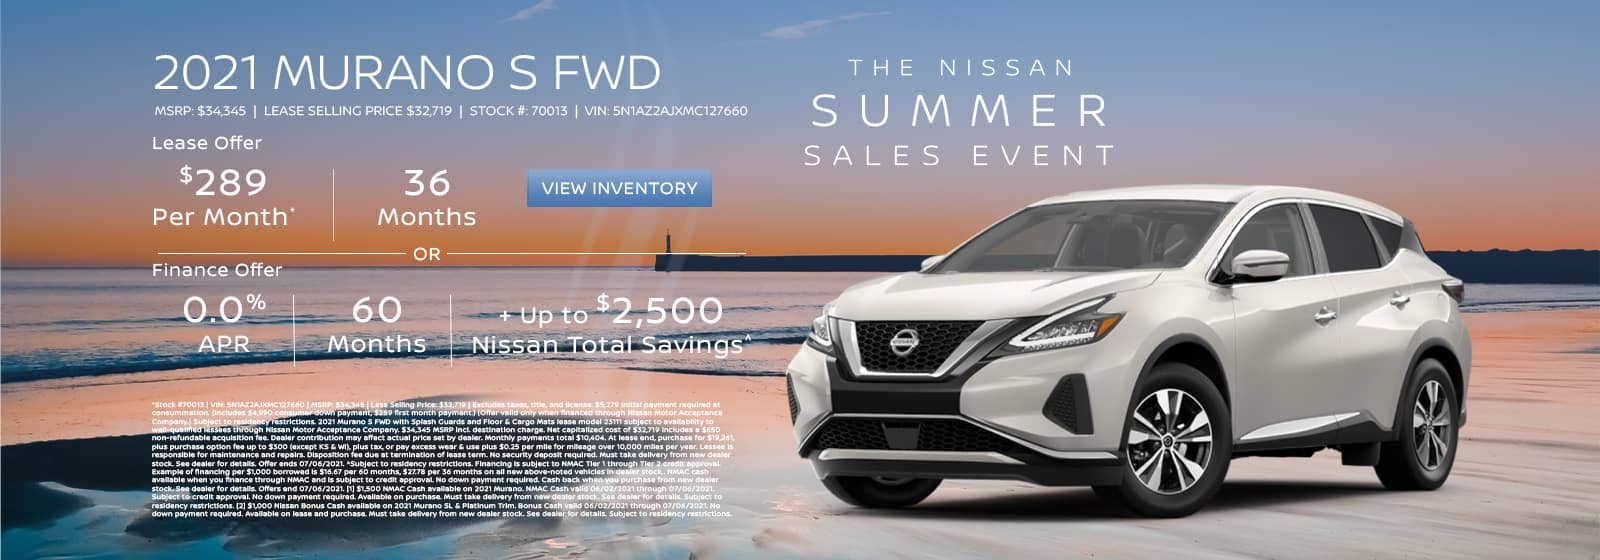 Lease a new 2021 Murano for $289 per month for 36 months. See dealer for details.